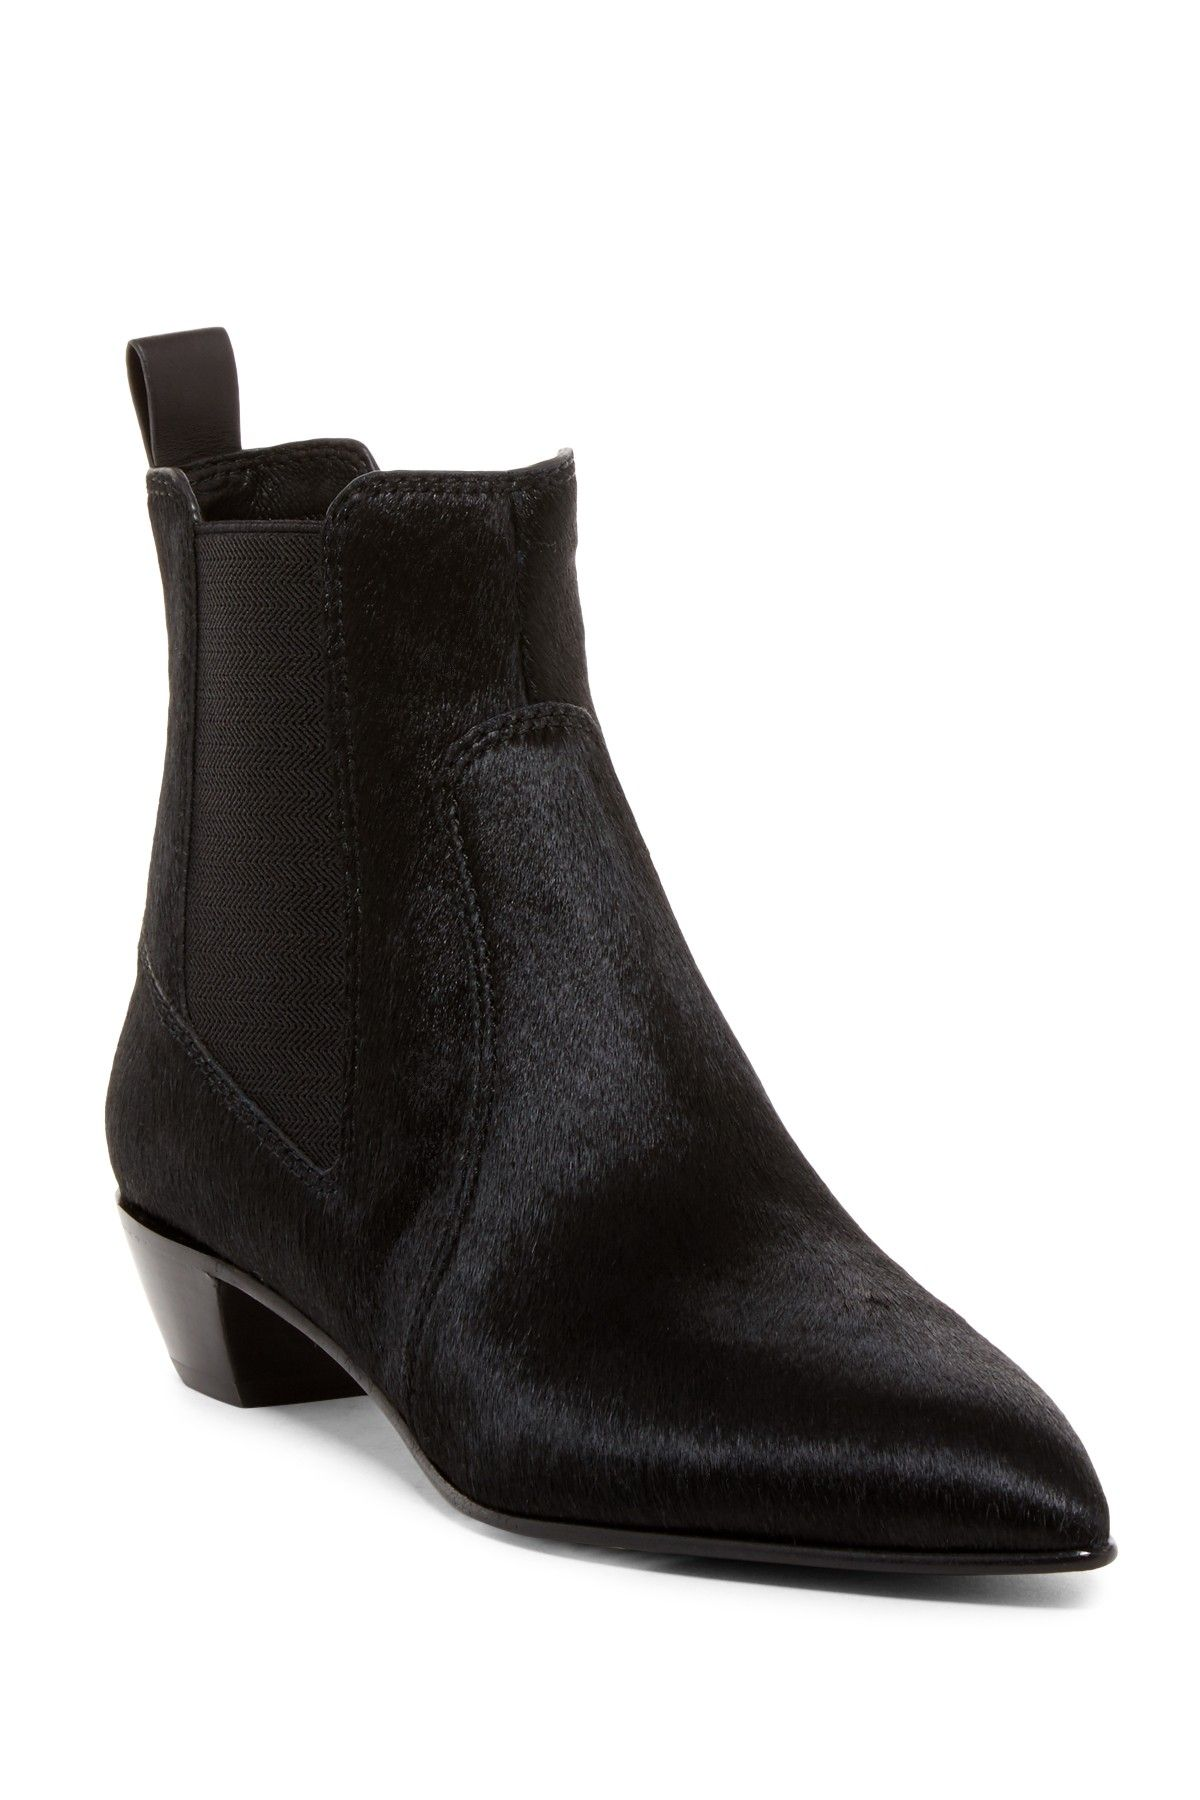 Marc by Marc Jacobs | Lou Pointed Toe Genuine Calf Hair Chelsea Boot